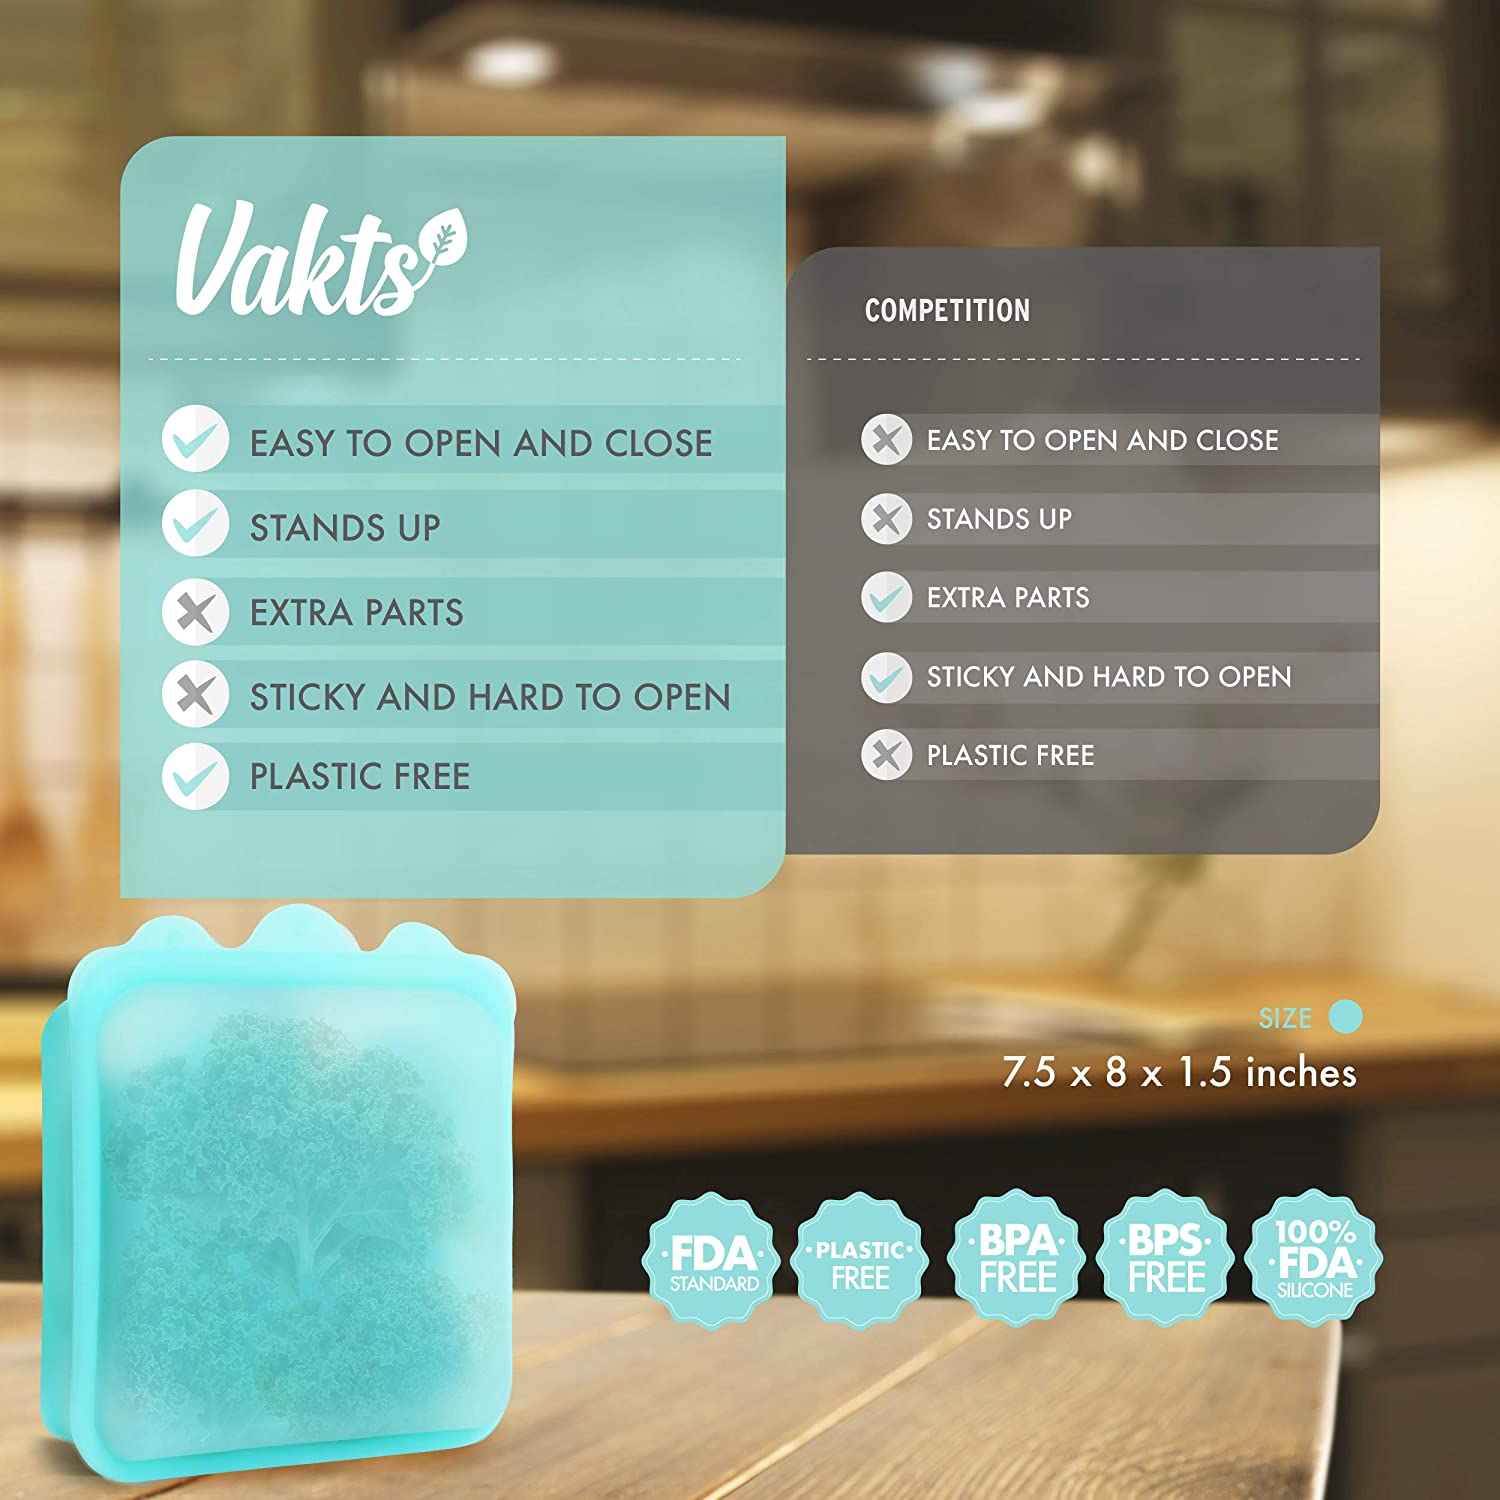 VAKTS Premium Silicone Reusable Food Bag - Larger 5 cup capacity Zip Top storage bags for Sandwiches, Meat, Fish, Sous Vide, Liquid, Snack, School Lunch, Fruit, Freezer. Easy Open and Close. Aqua Blue